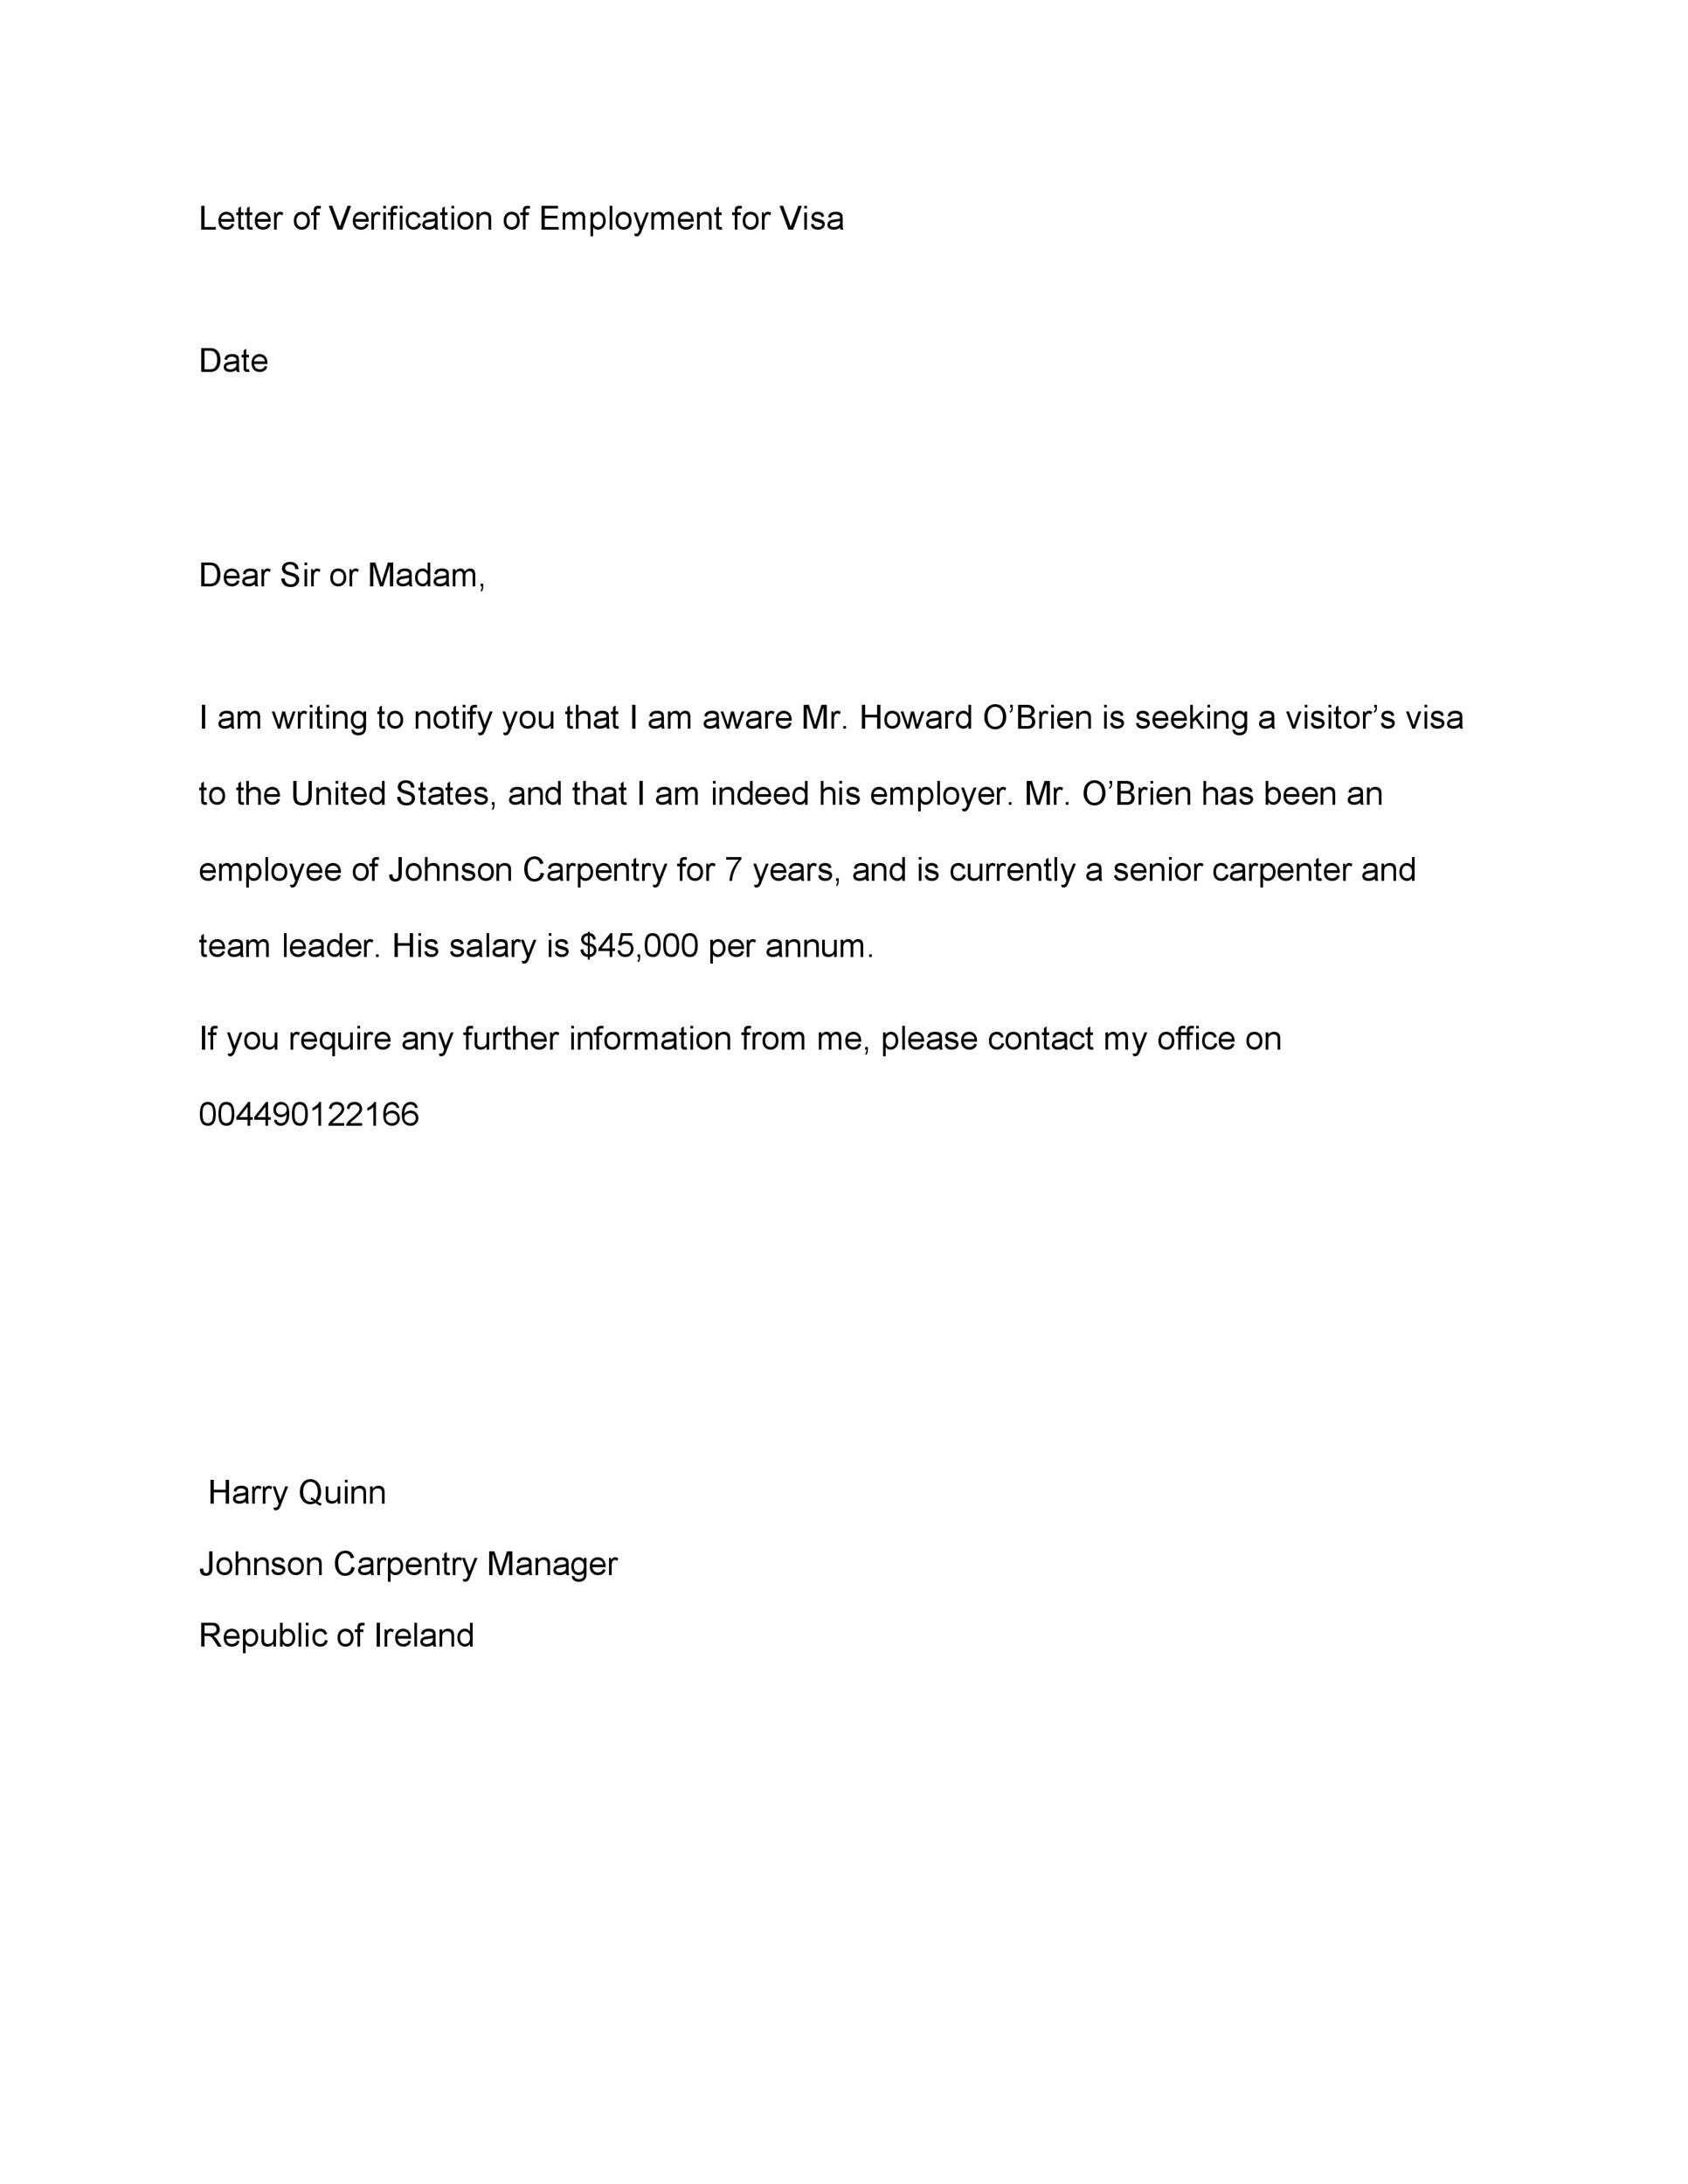 Proof Of Employment Letter Template - Atarprod.Info